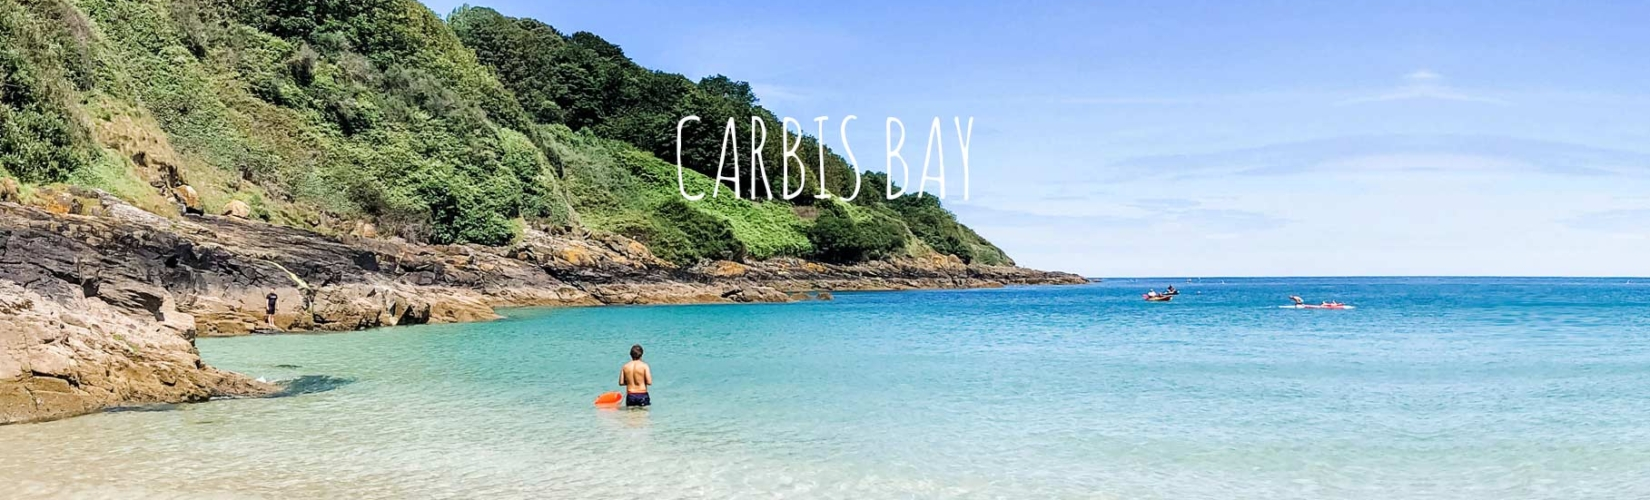 carbis-bay-holidays-so-st-ives